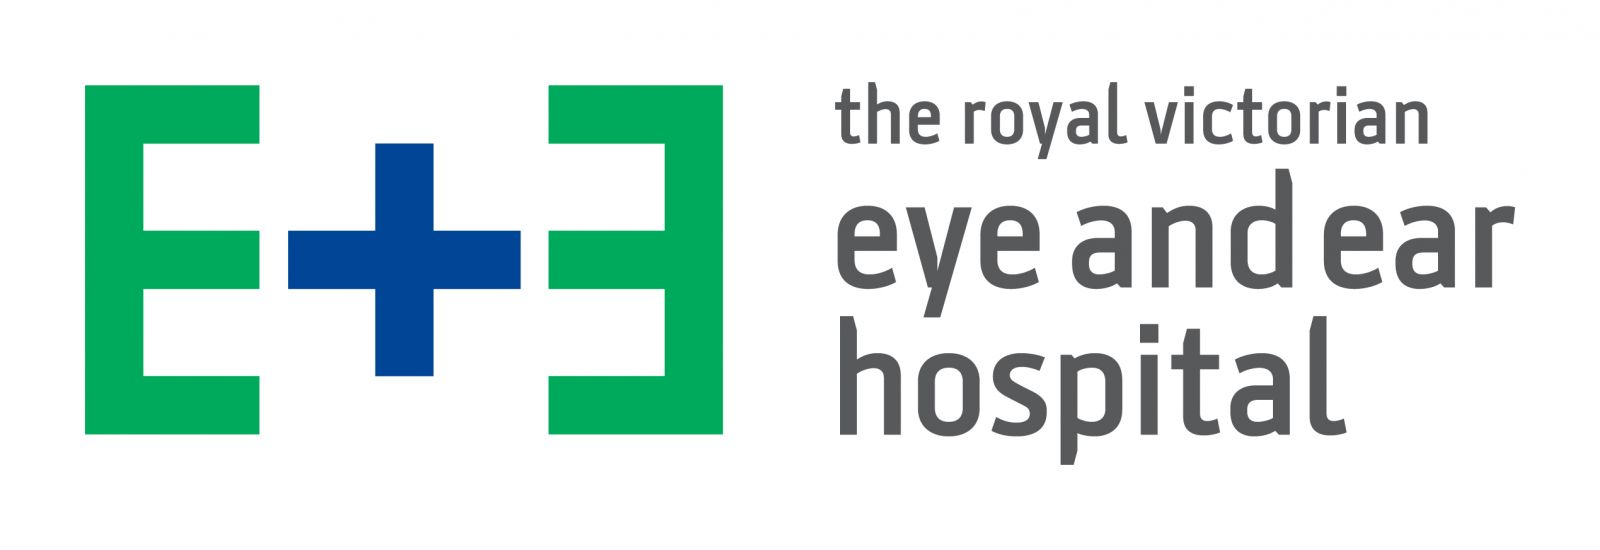 the royal victorian eye and ear hospital logo